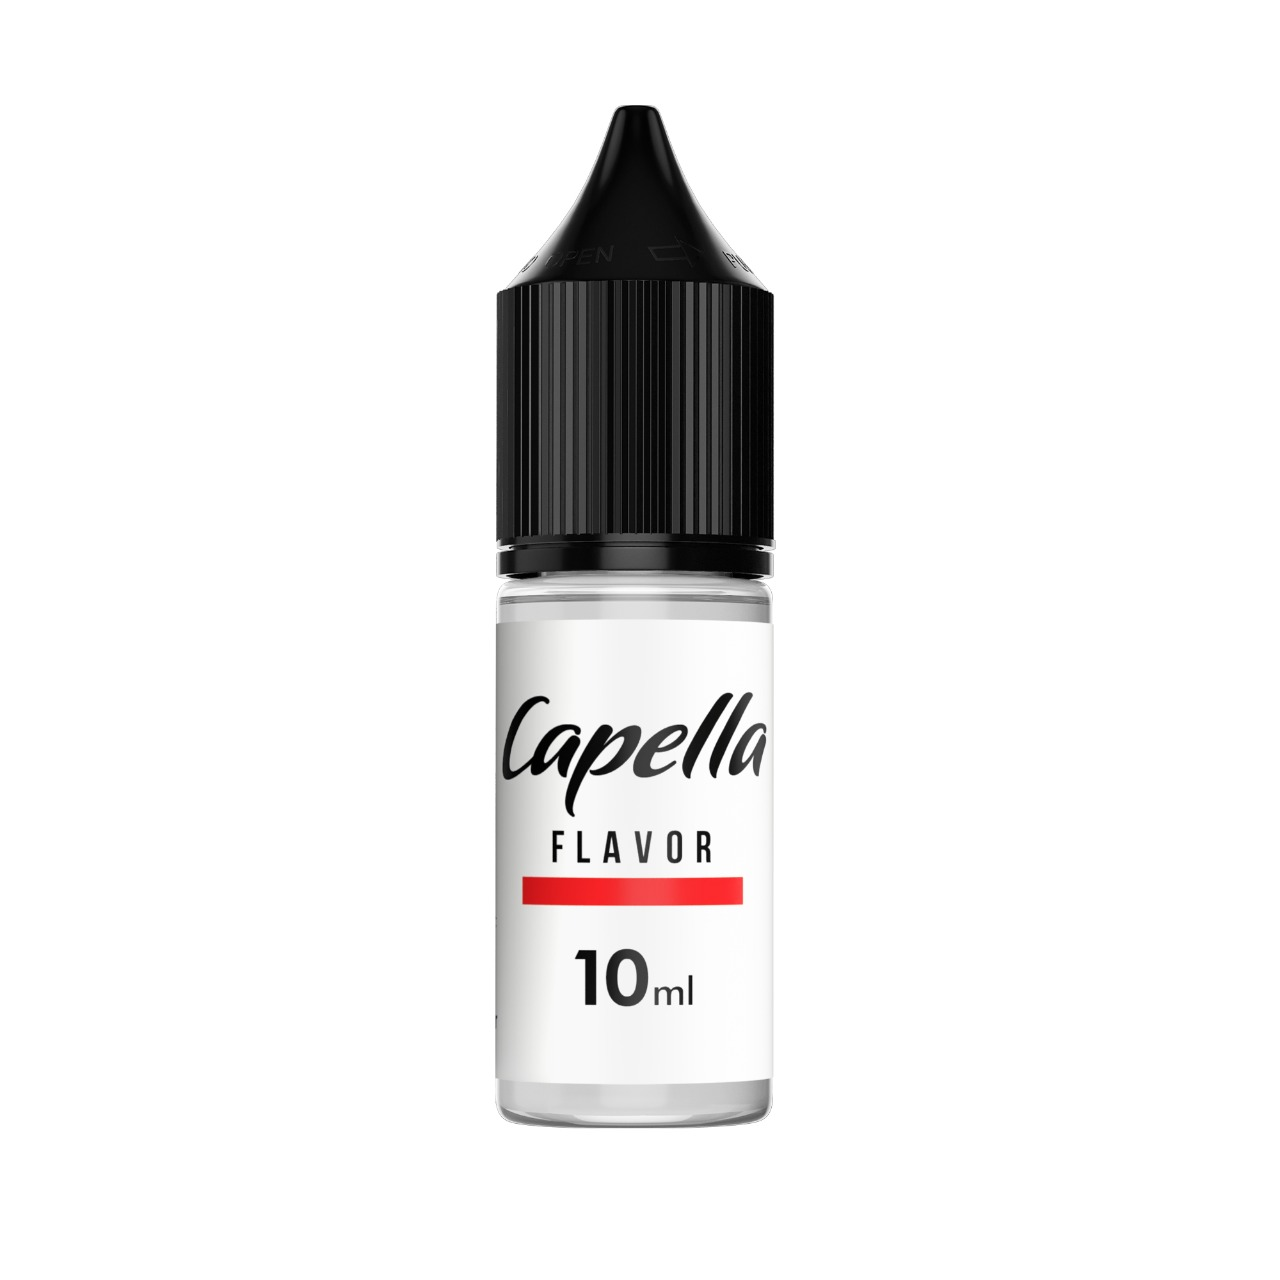 Capella (CAP) Original Blend 10ml